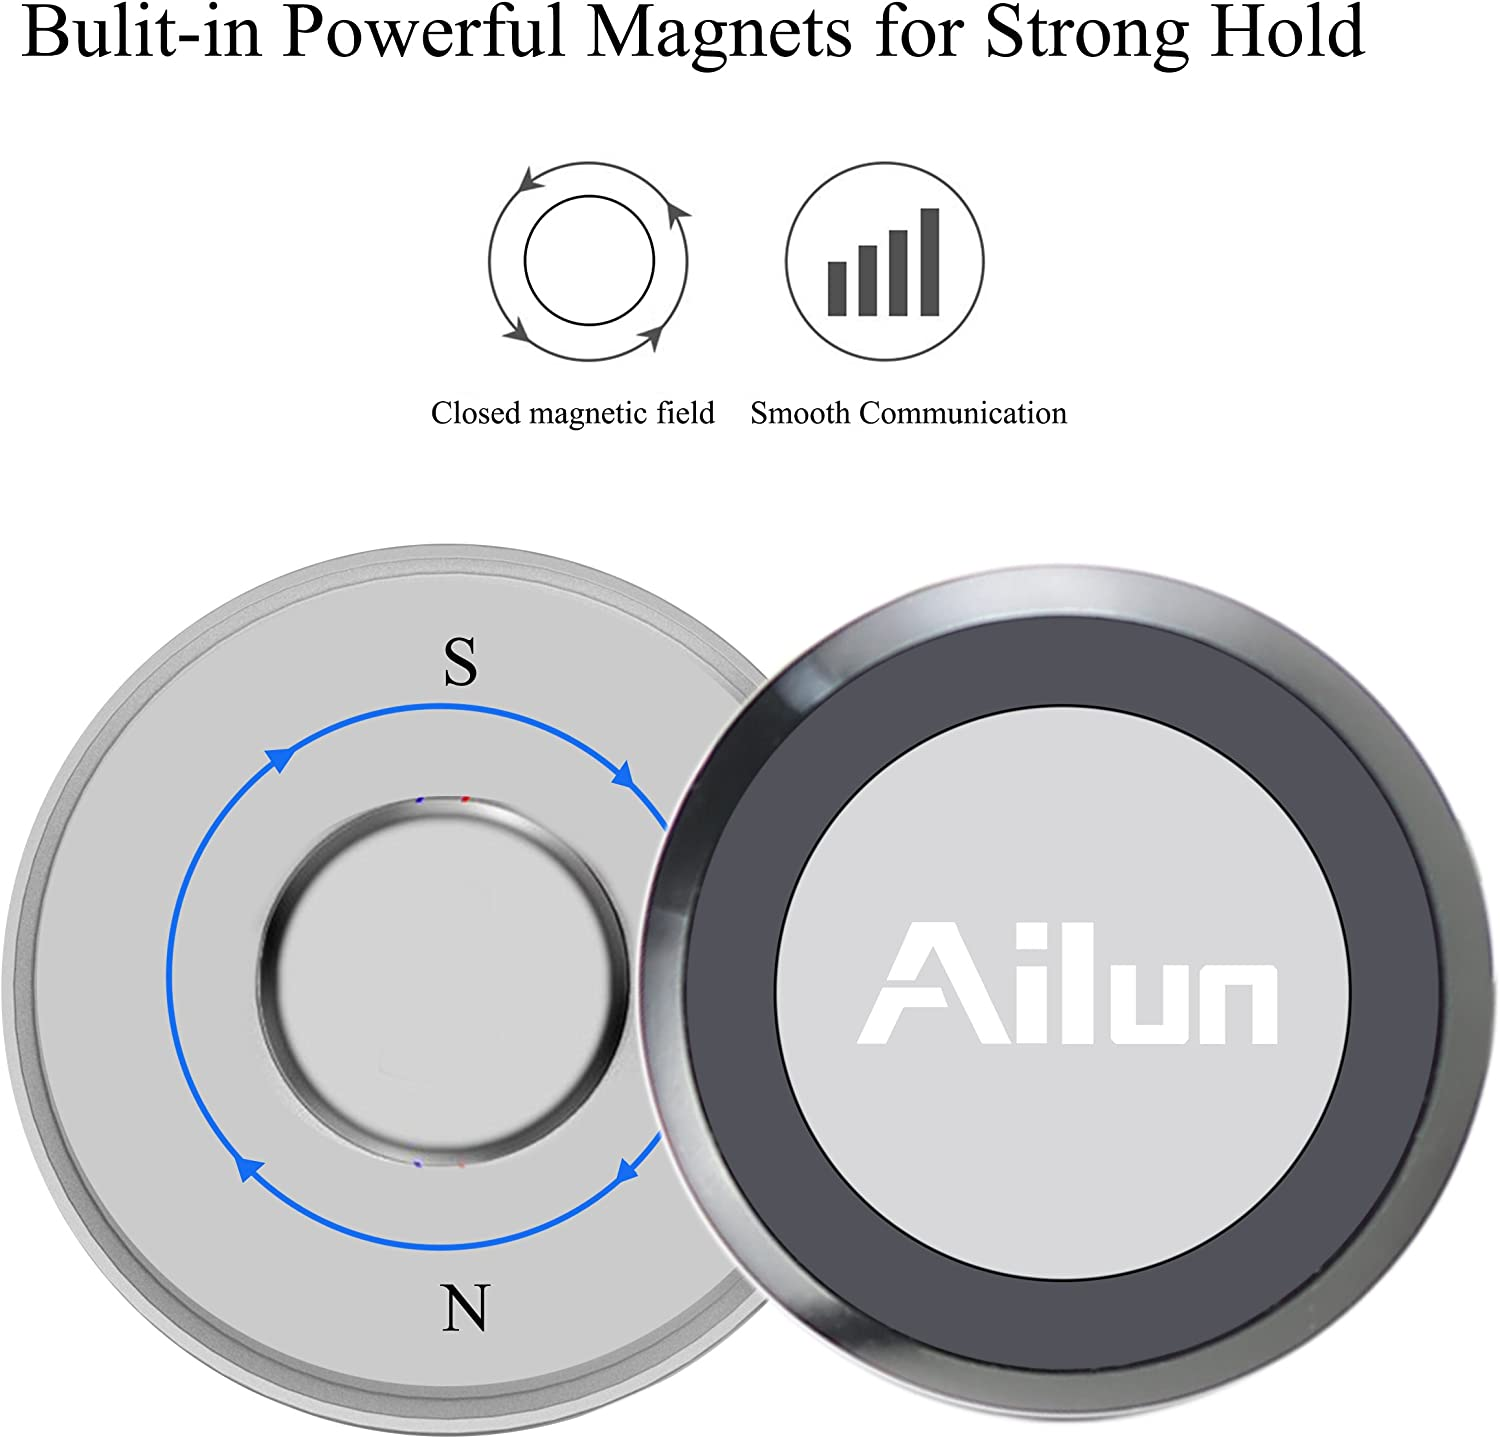 Fba Ailun Metal Ball Magnetic Car Mount For Mobile Devices Black Auto